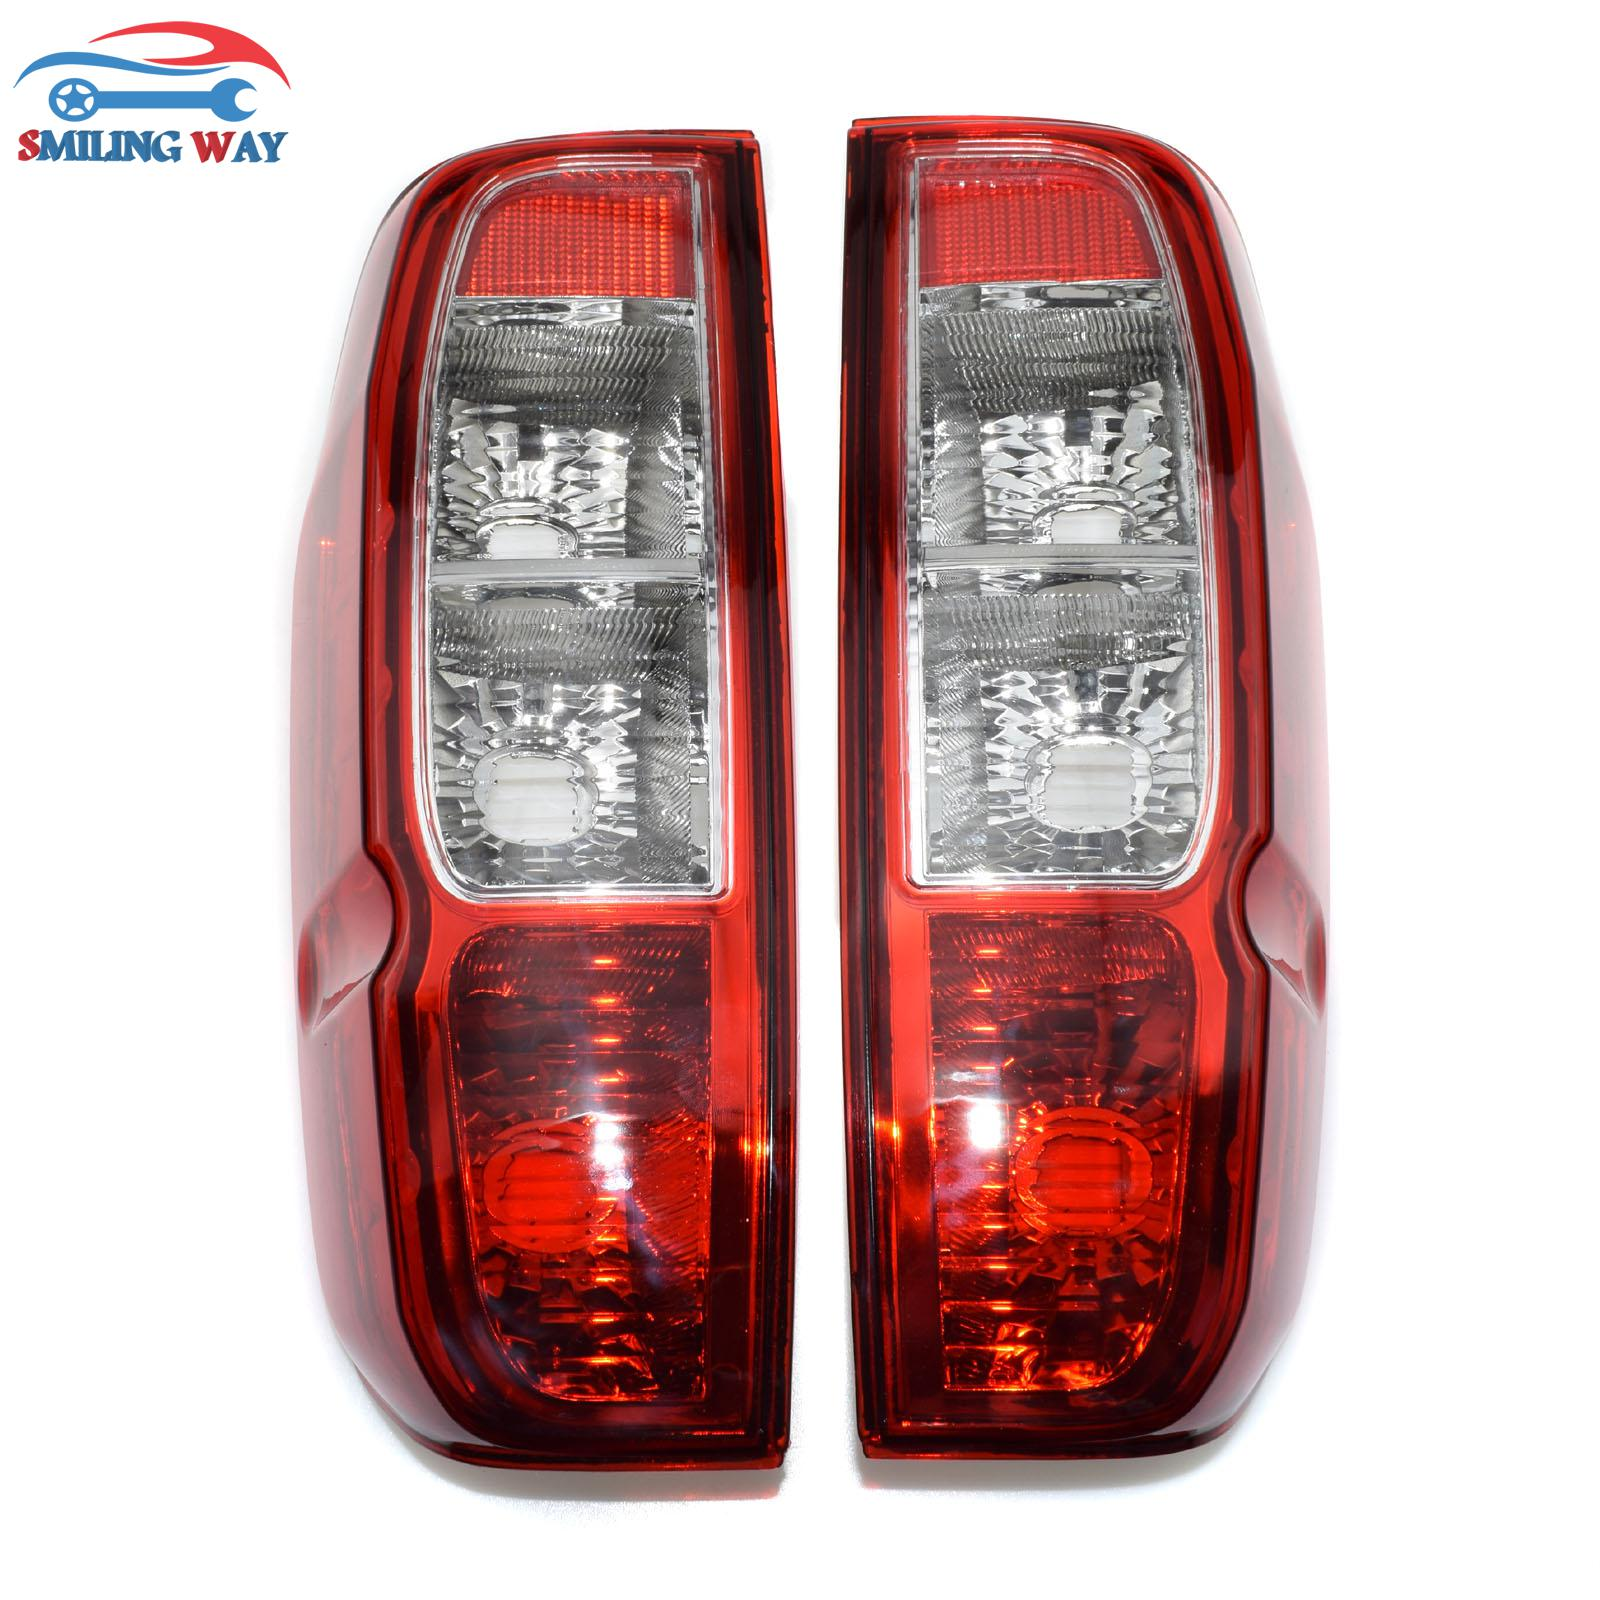 SMILING WAY Rear Tail light Taillight Housing Lamp Left Right For Nissan D40 Navara Frontier Pickup